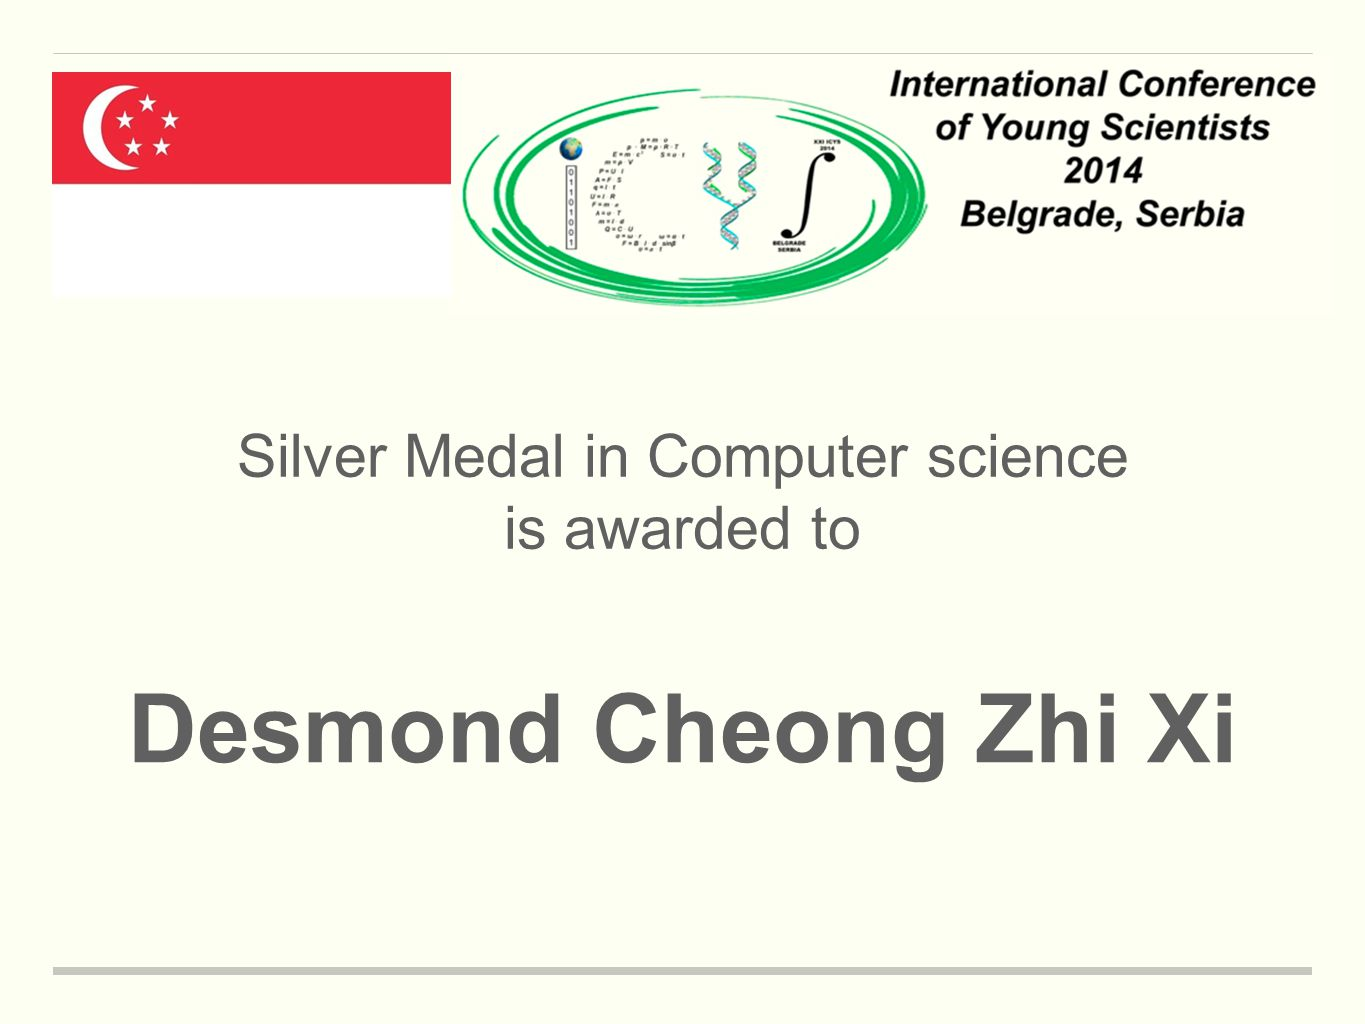 Silver Medal in Computer science is awarded to Desmond Cheong Zhi Xi